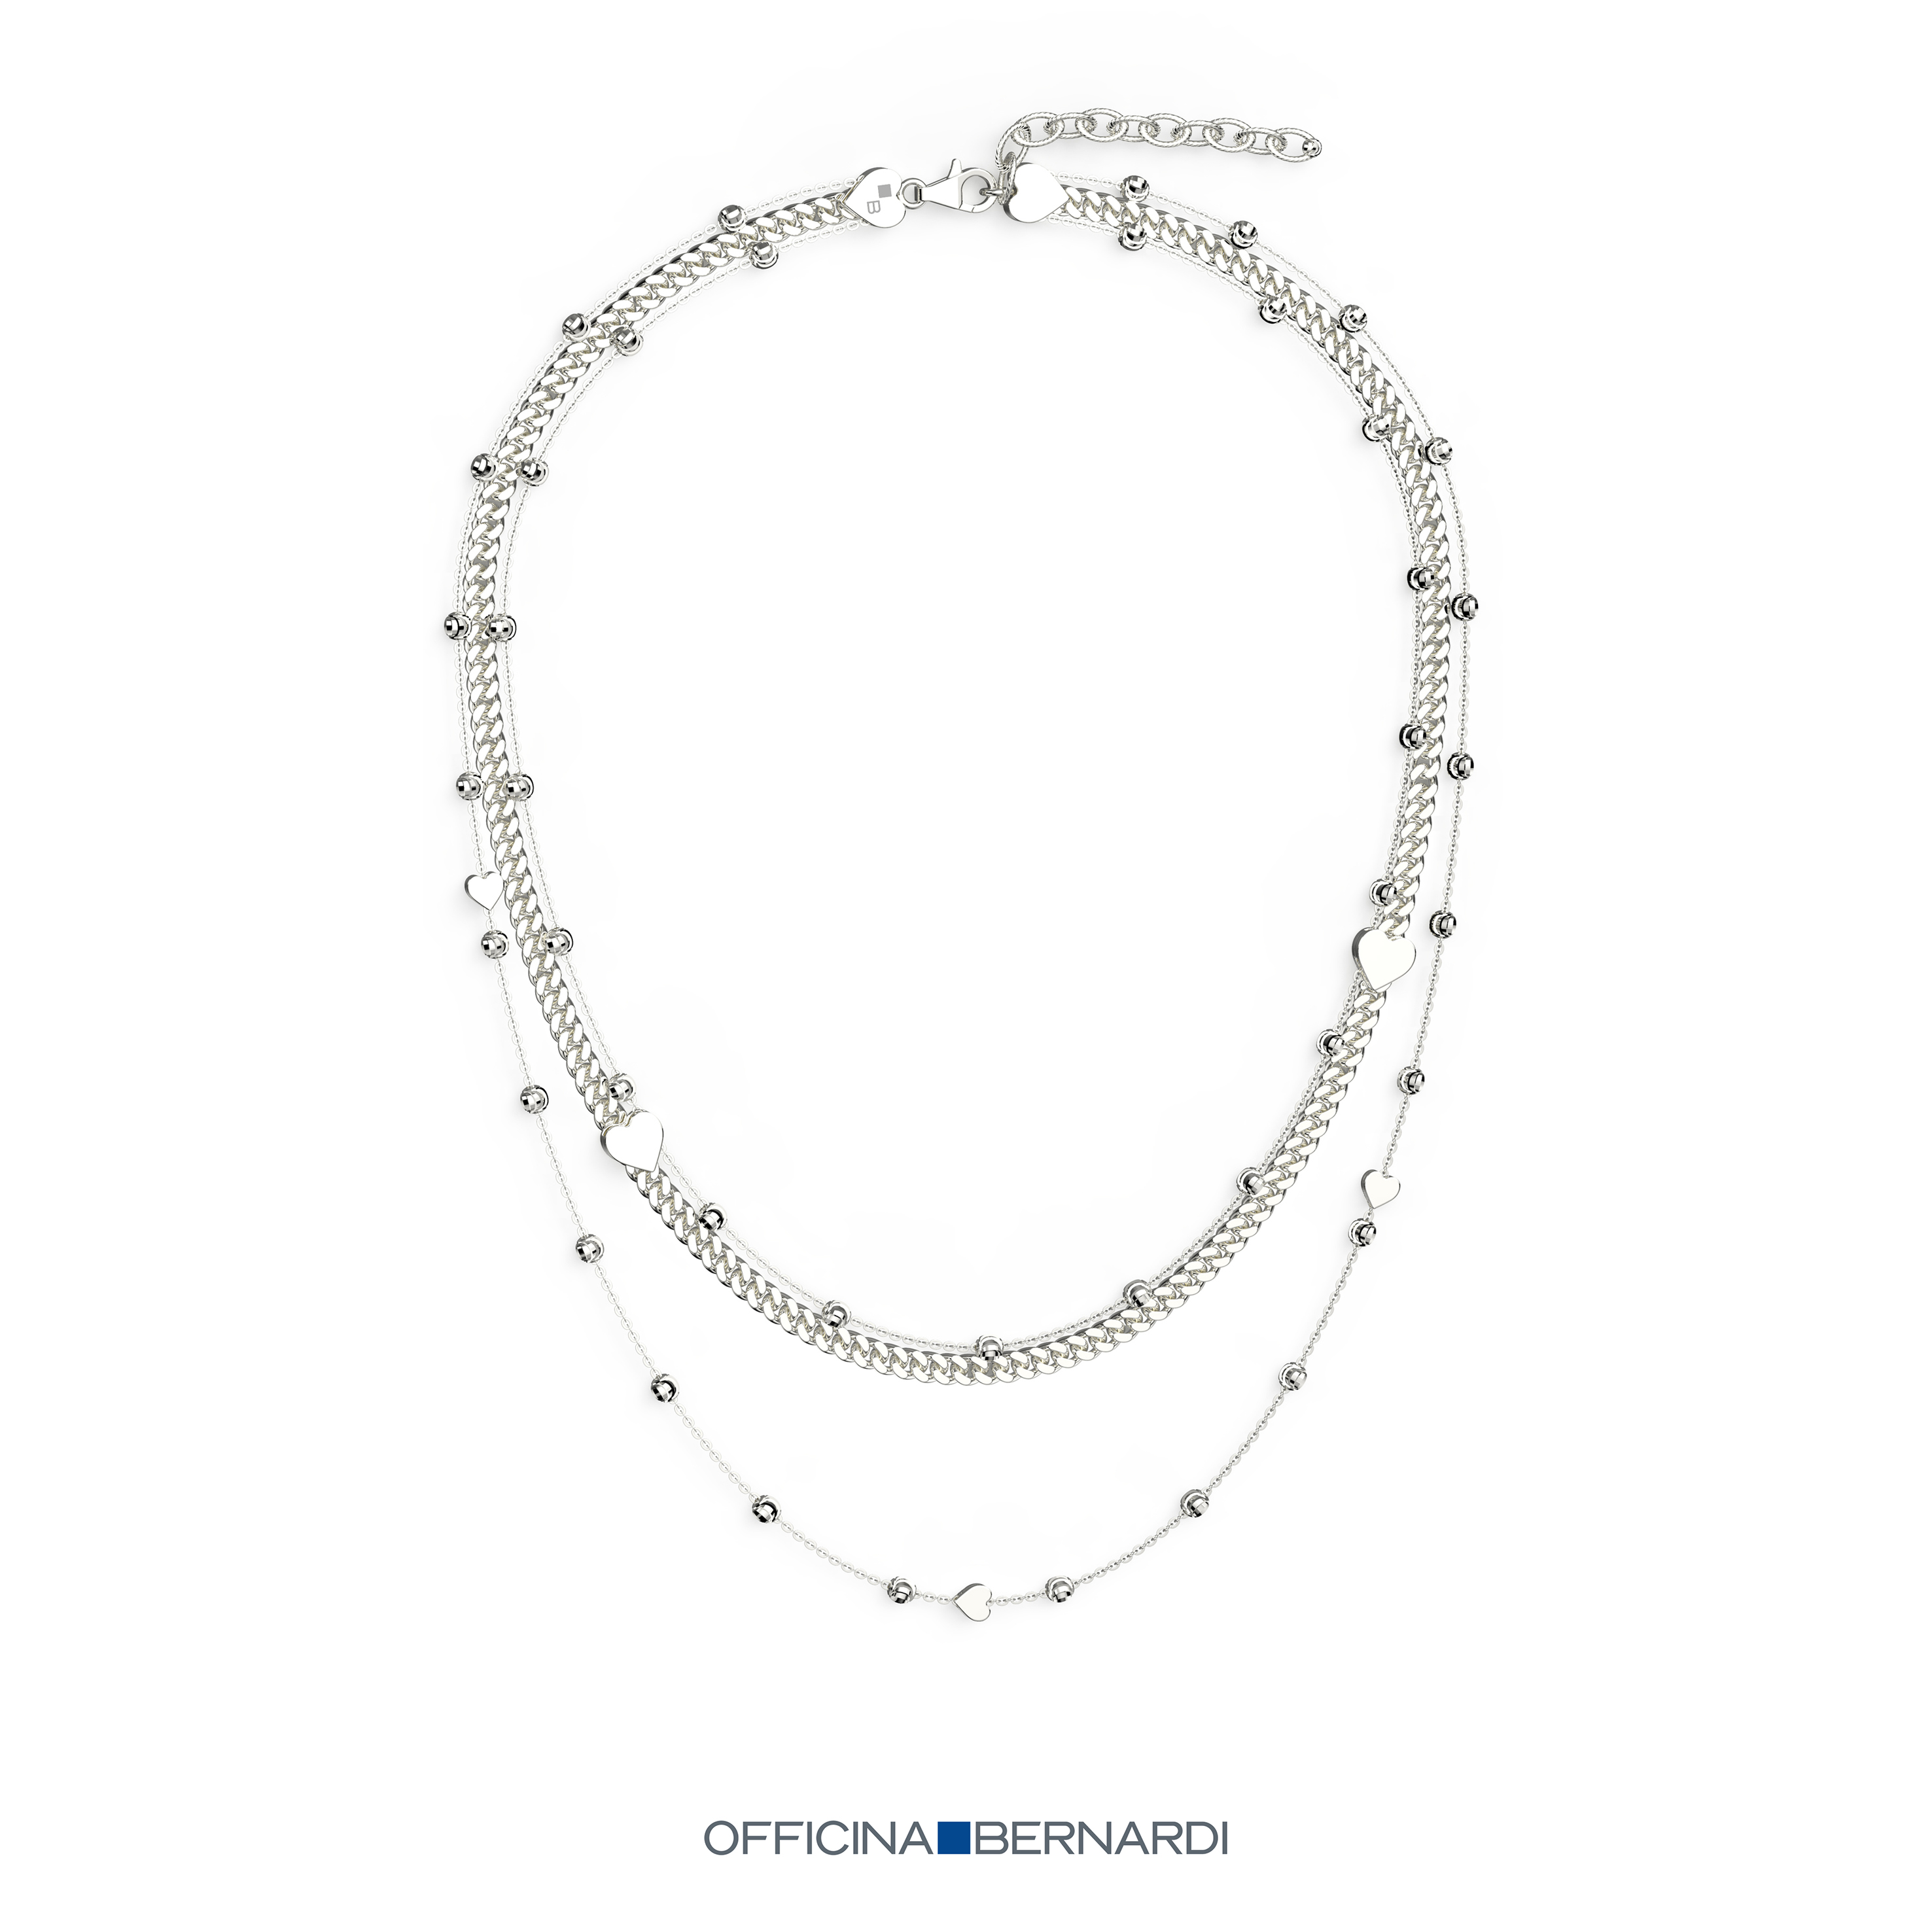 Double Layered heart and diamond cut beaded accented necklace, sterling silver with rhodium plate